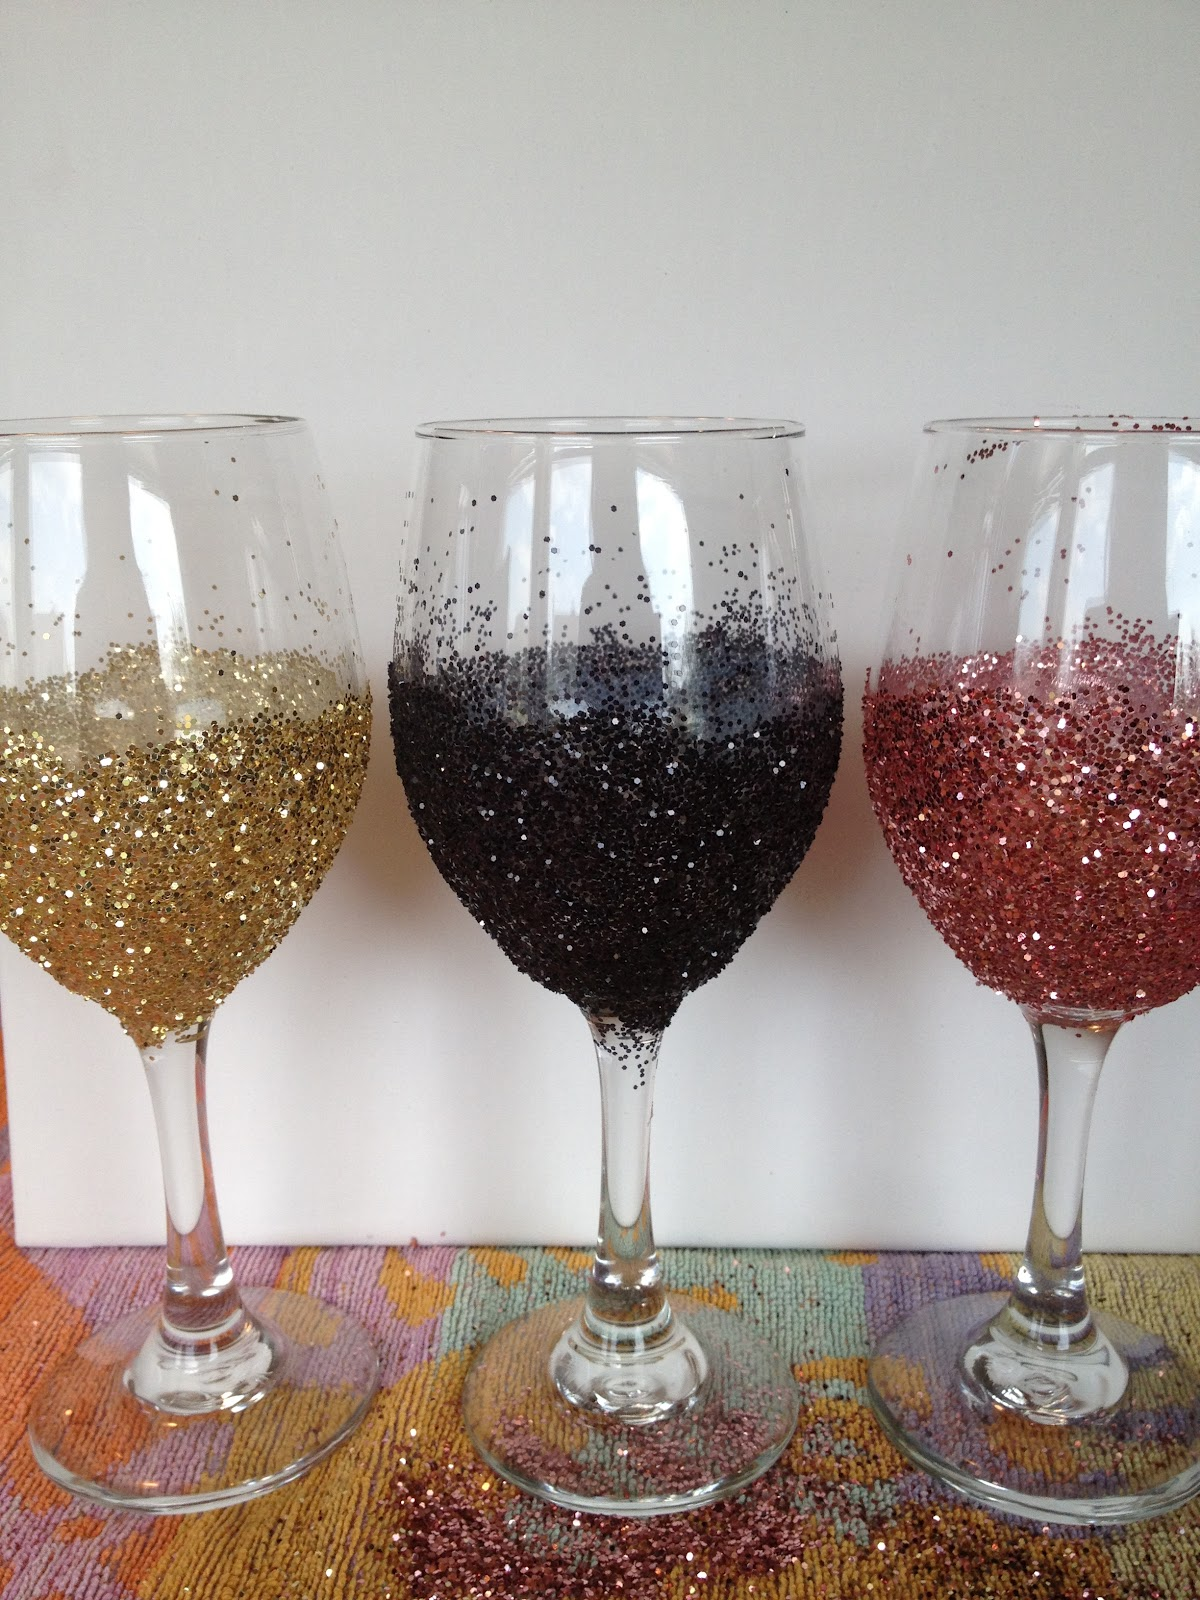 My simple obsessions diy glitter wine glasses How to make wine glasses sparkle